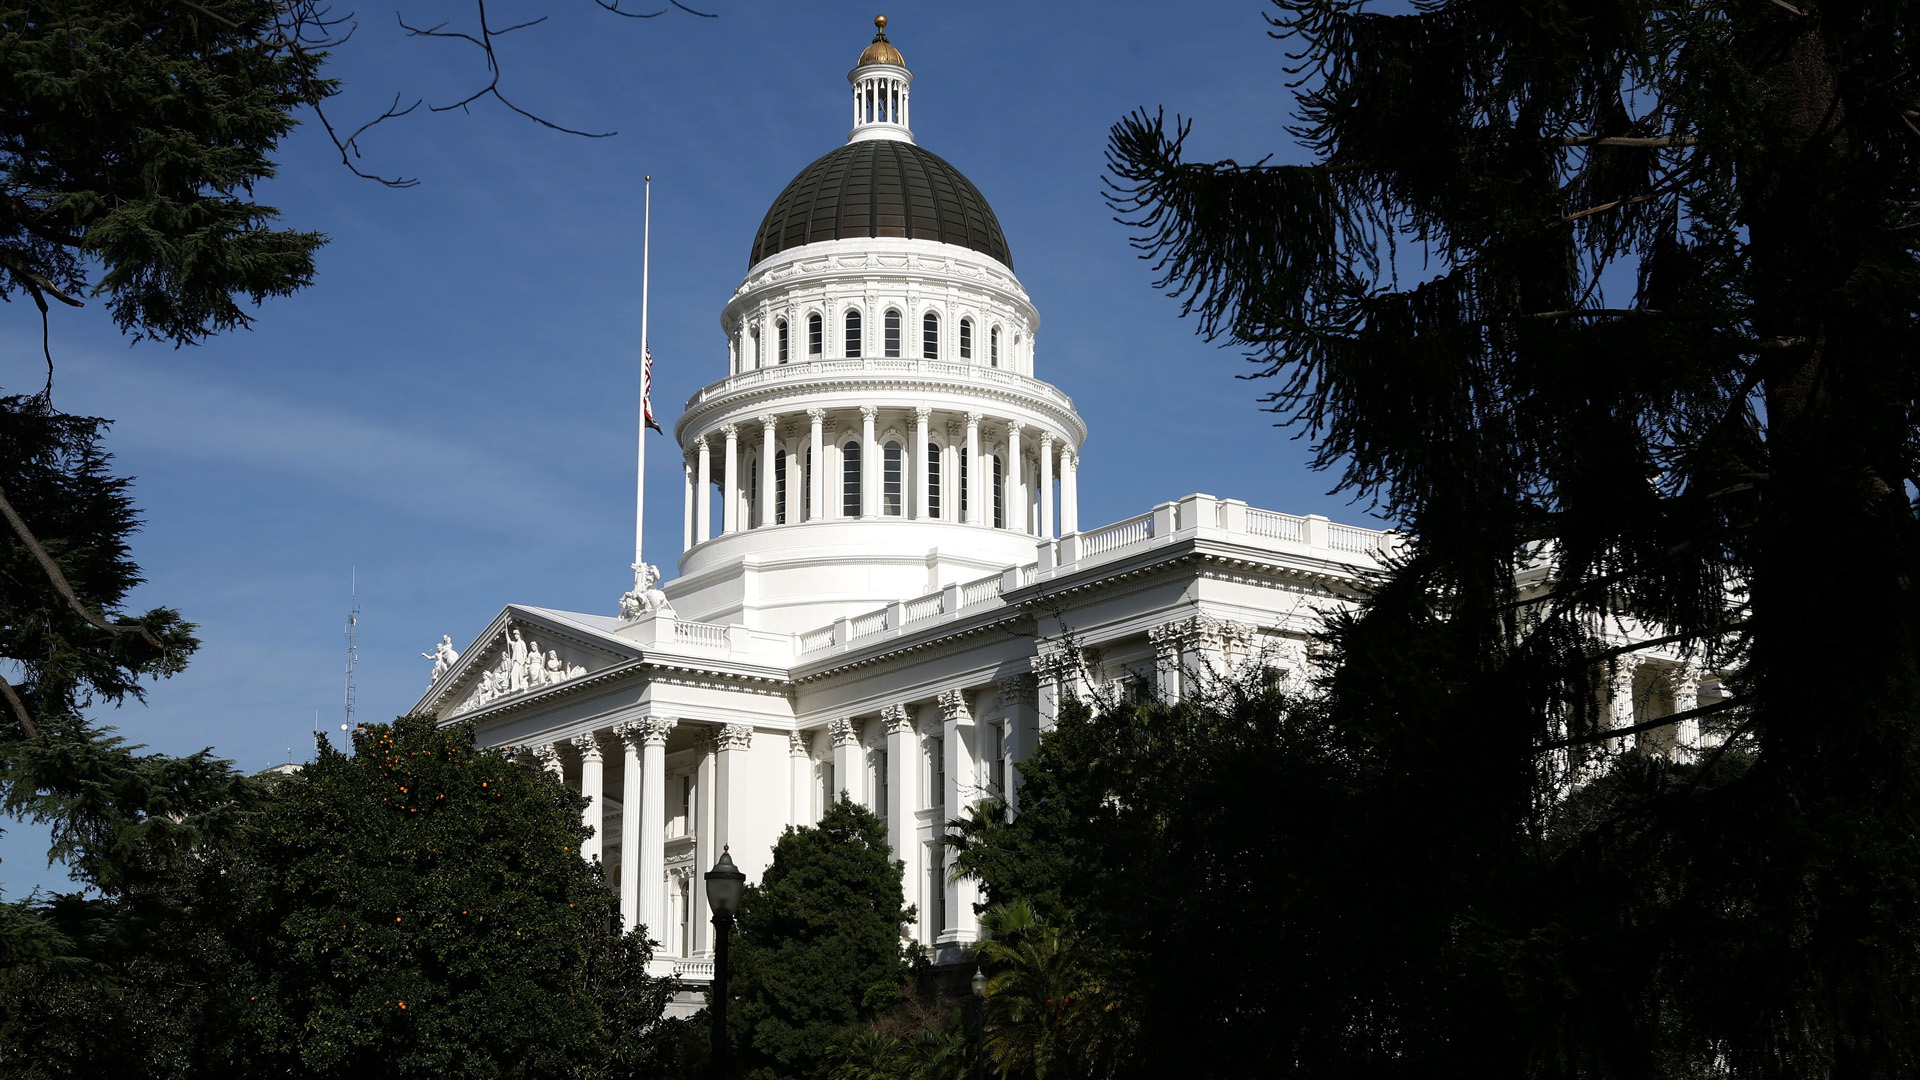 The California State Capitol is seen in a file photo. (Credit: Justin Sullivan/Getty Images)